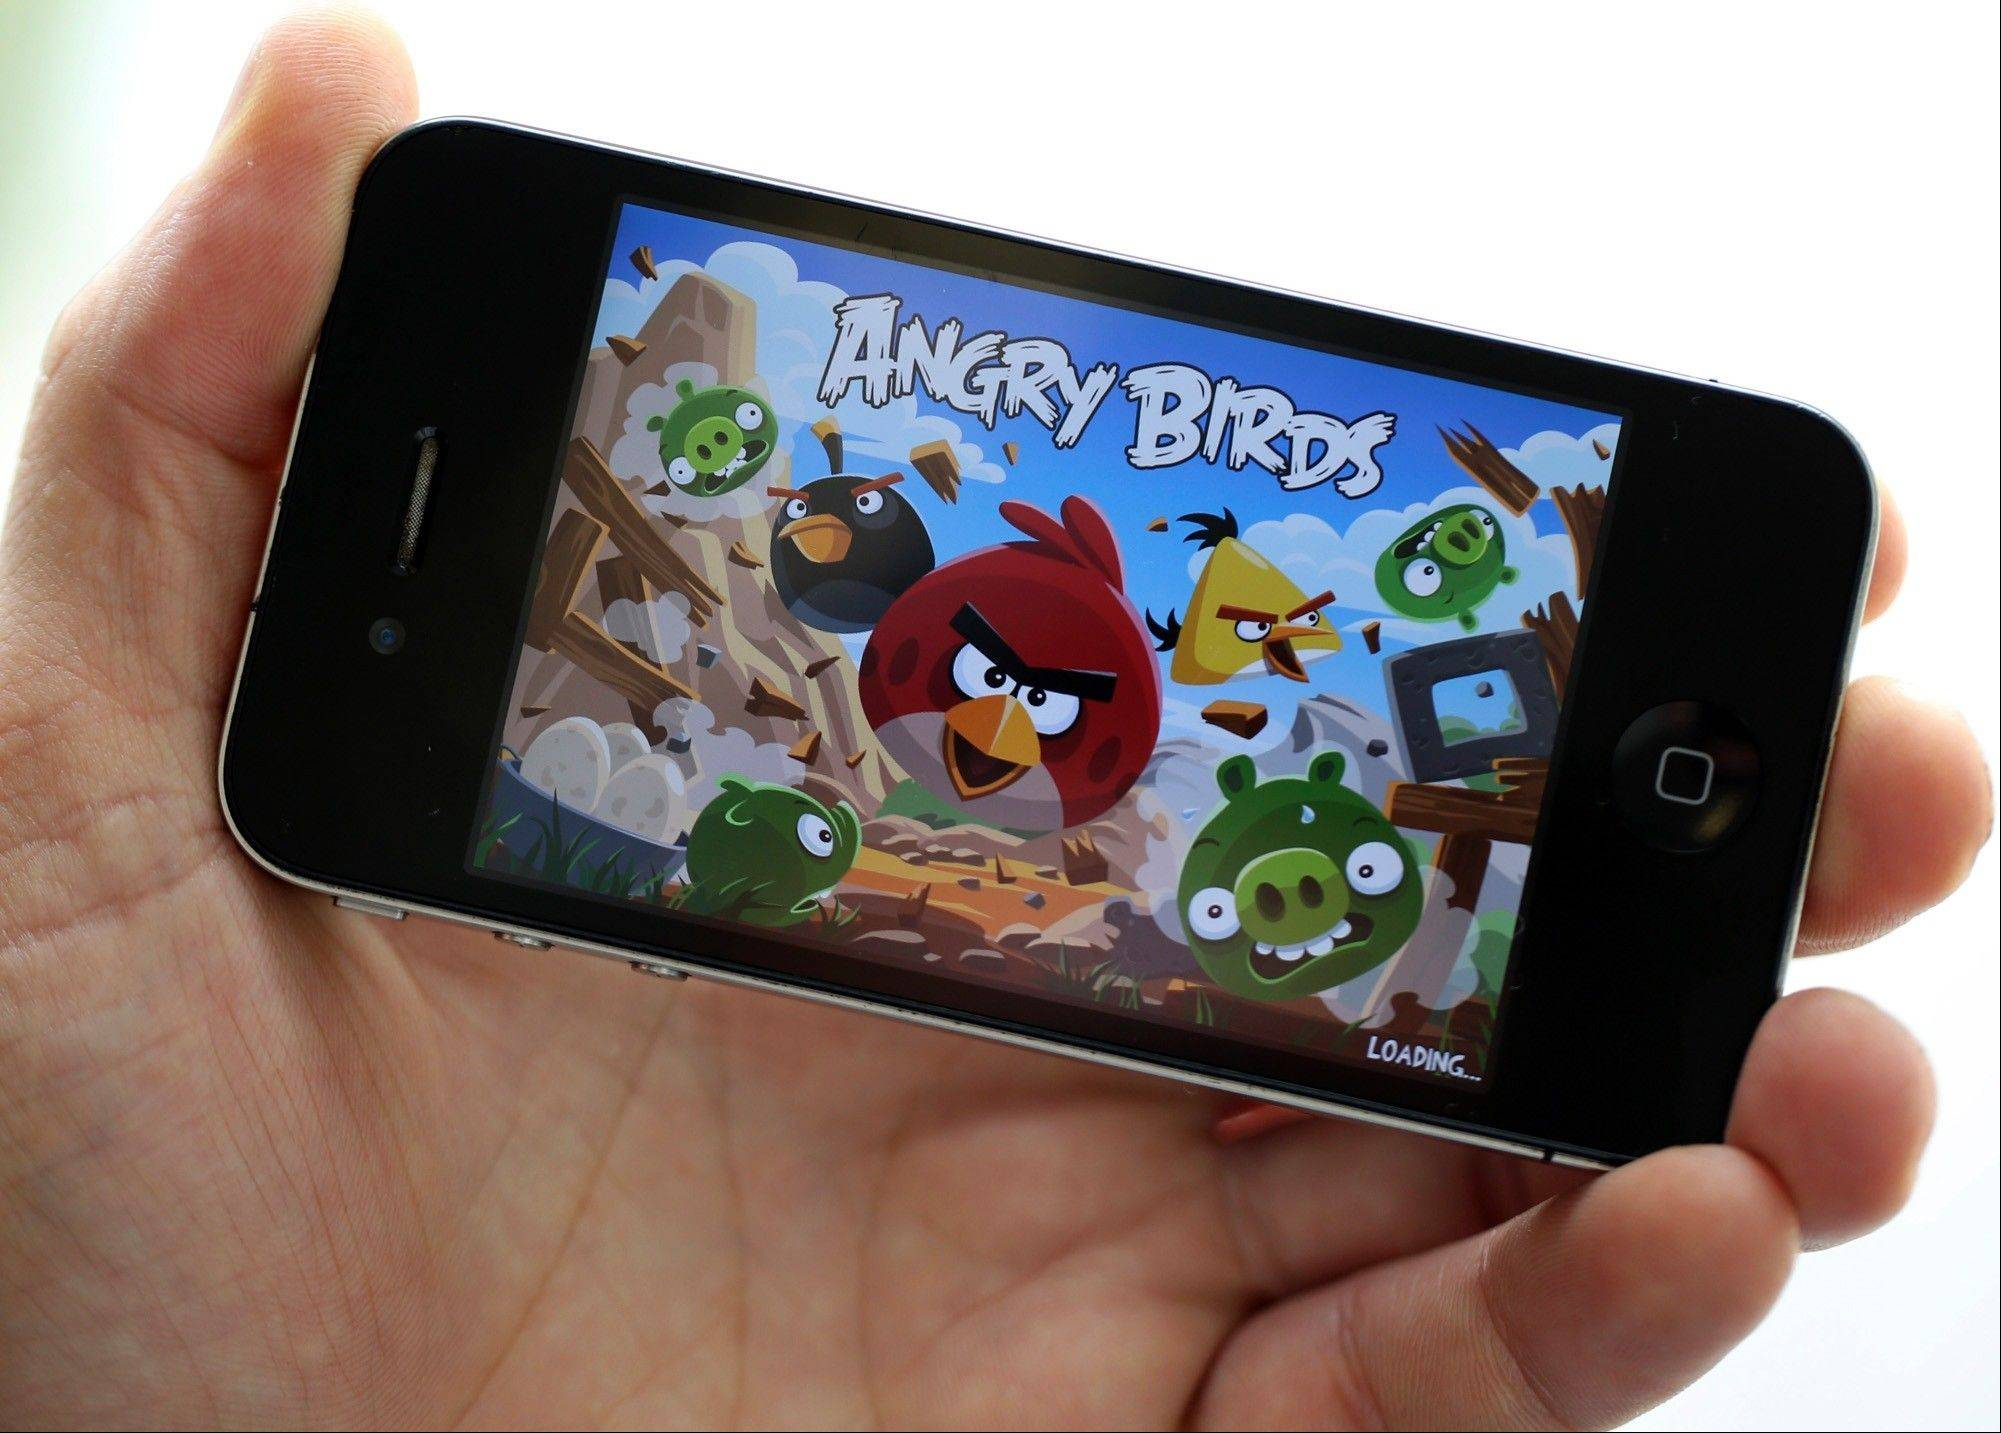 The ''Angry Birds'' mobile-phone game, designed by Rovio Mobile, on an Apple iPhone 4. A tablet computer developed by North Korea features the popular game, but the developers of the internationally popular app say they have nothing to do with it.